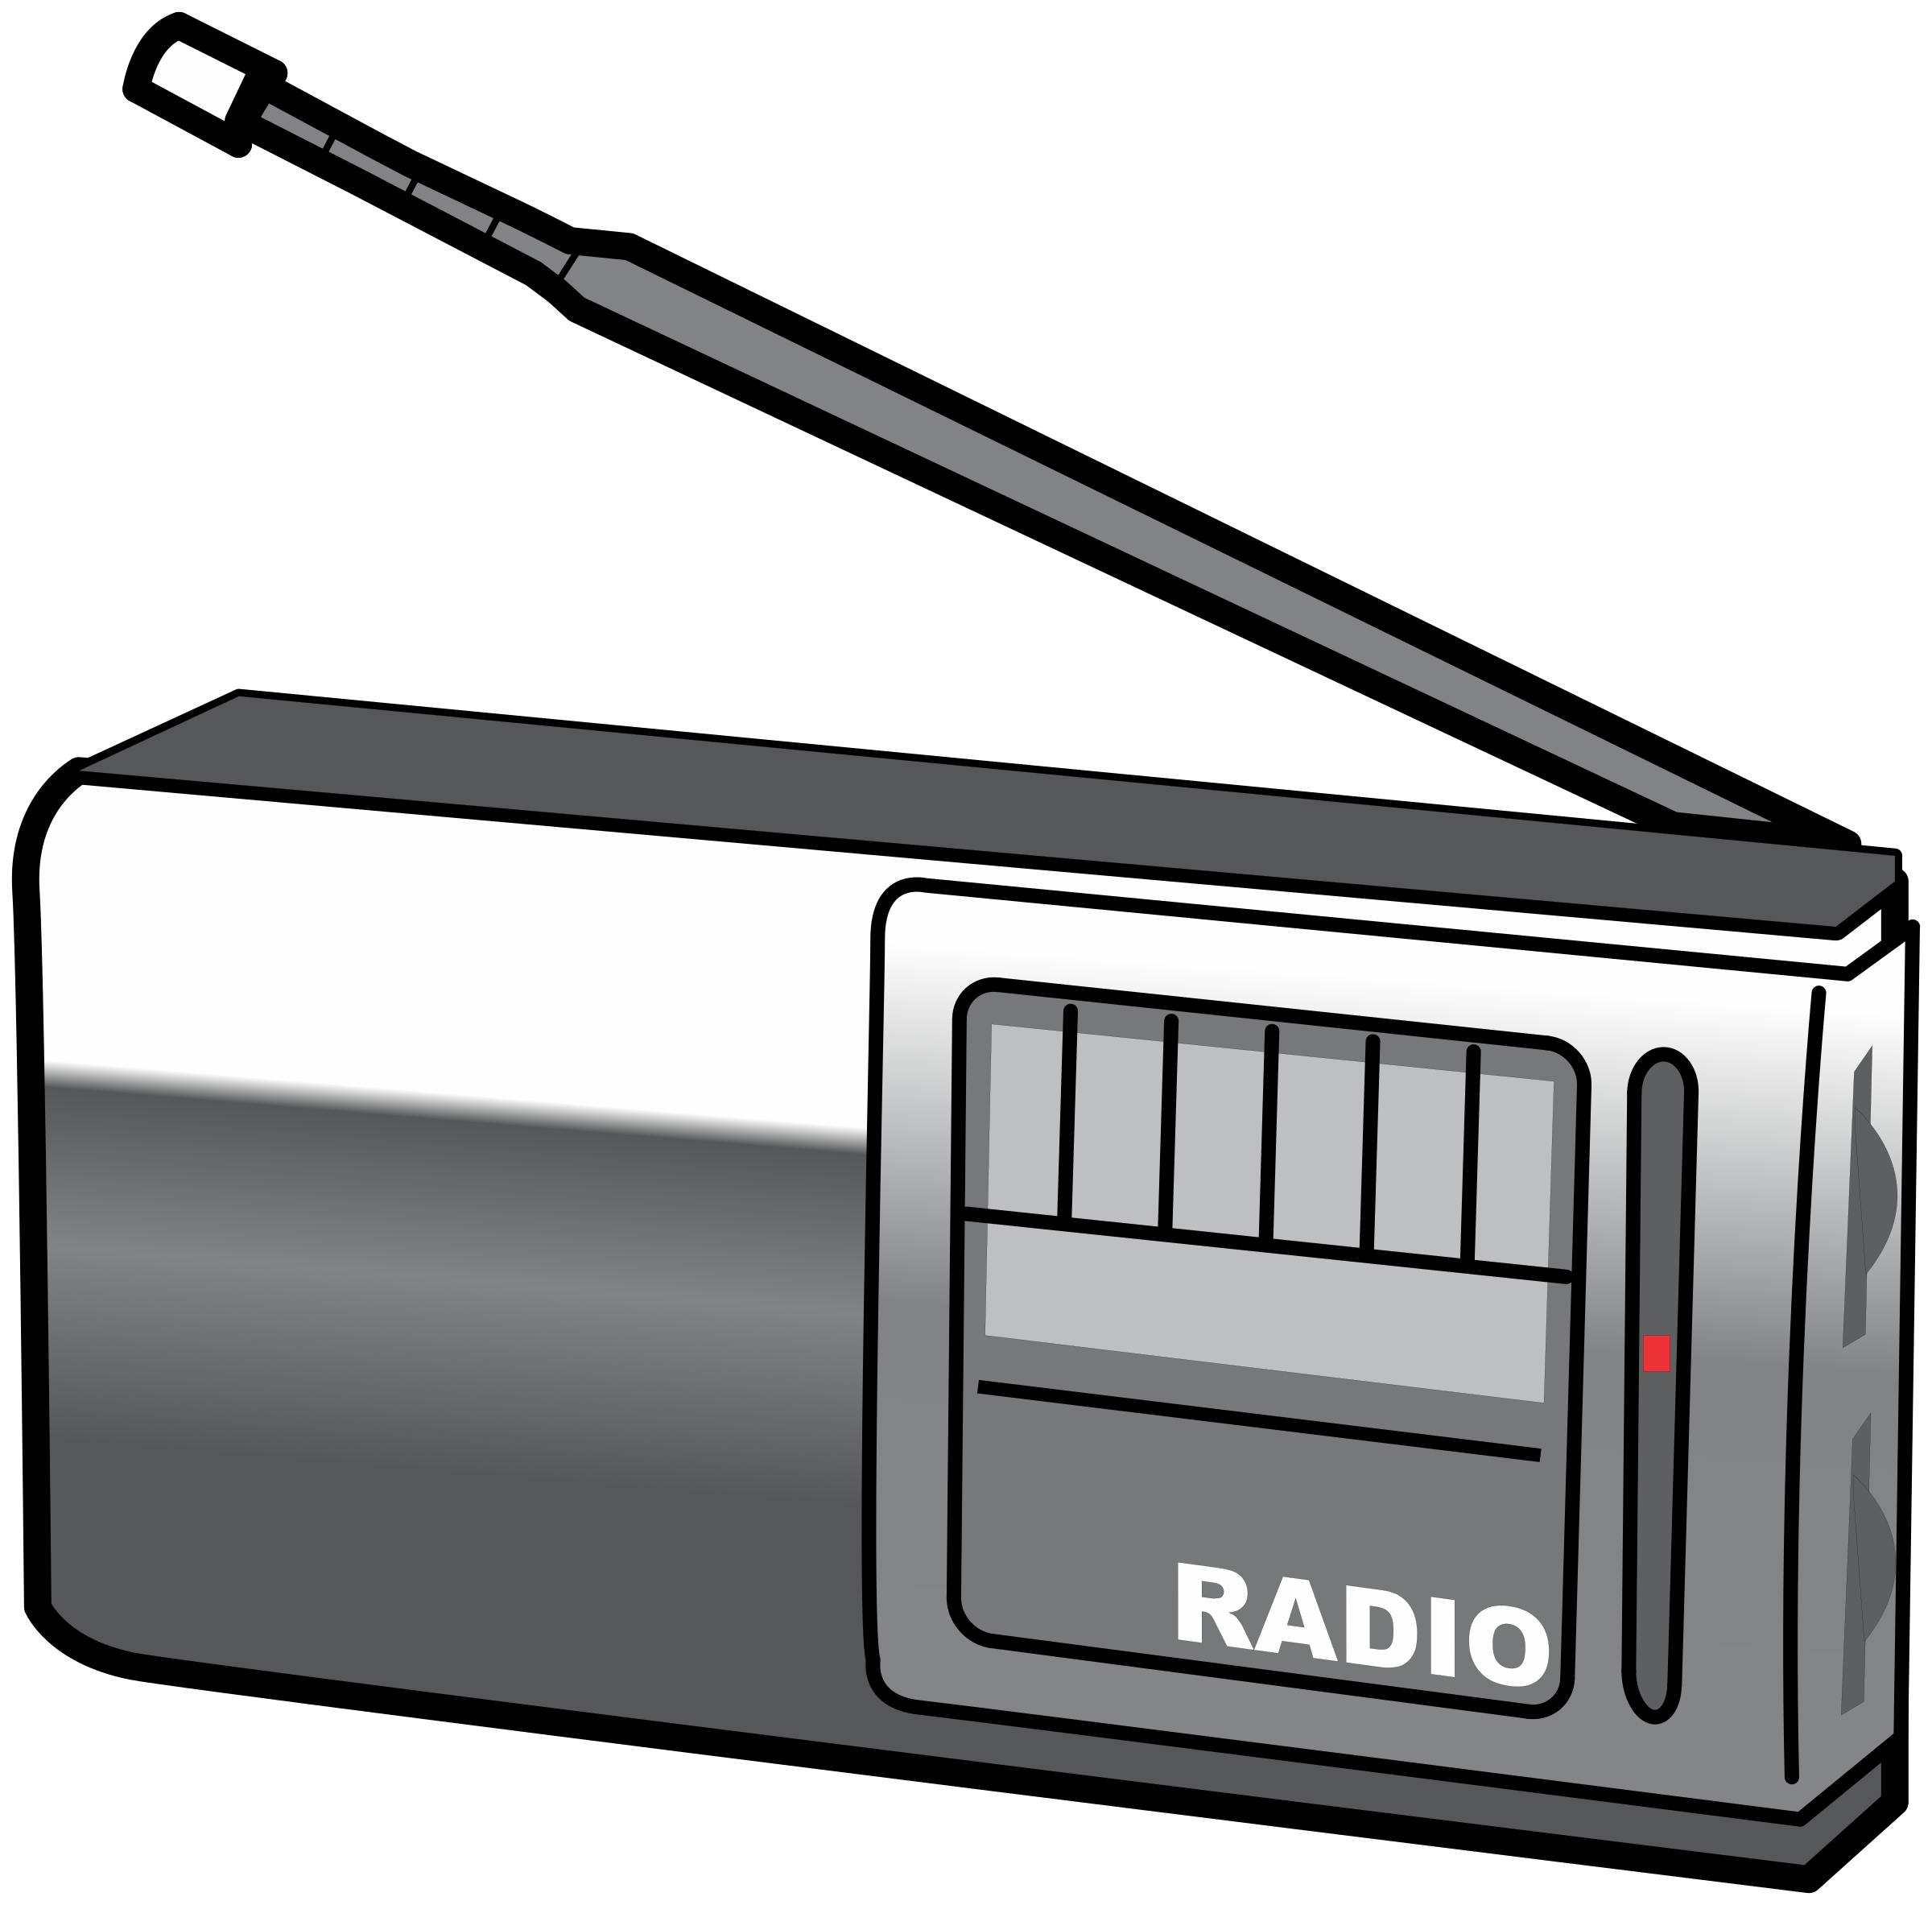 clip transparent library Radio clipart. Simple portable big image